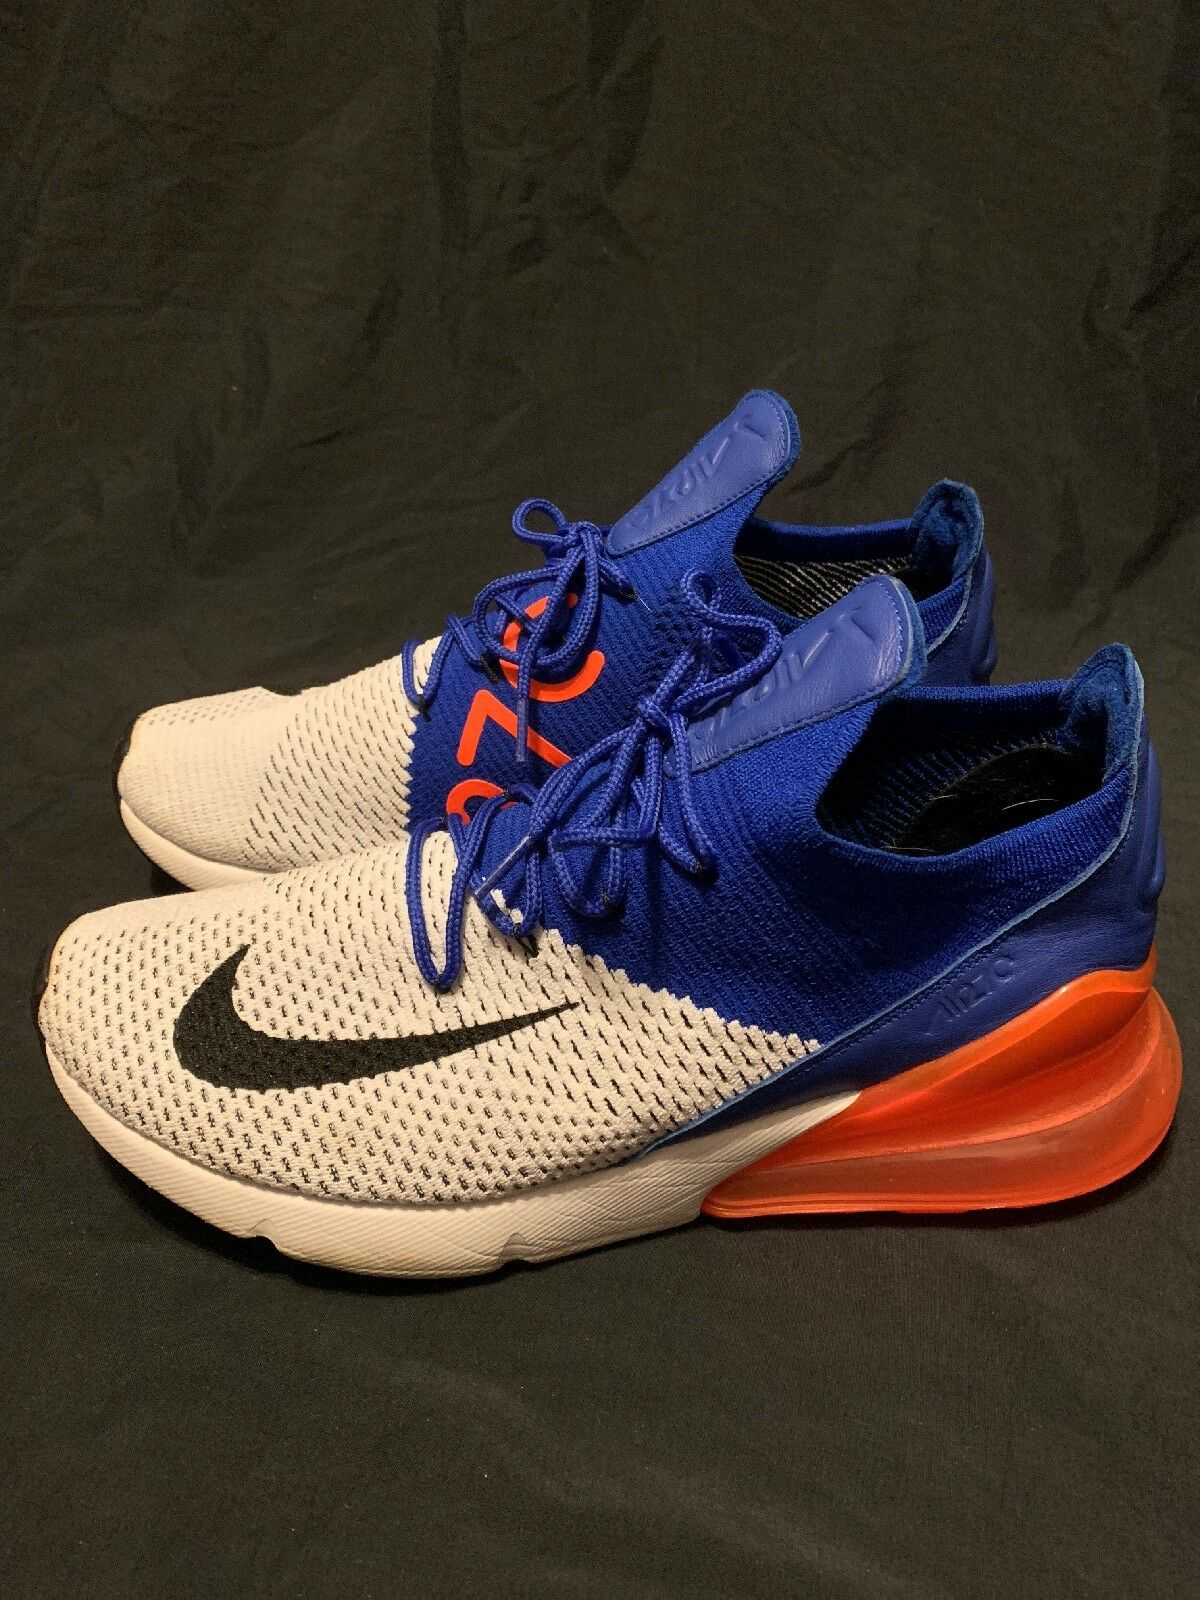 Nike Air Max 270 Flyknit Racer bluee Bright Red NYK Size 12